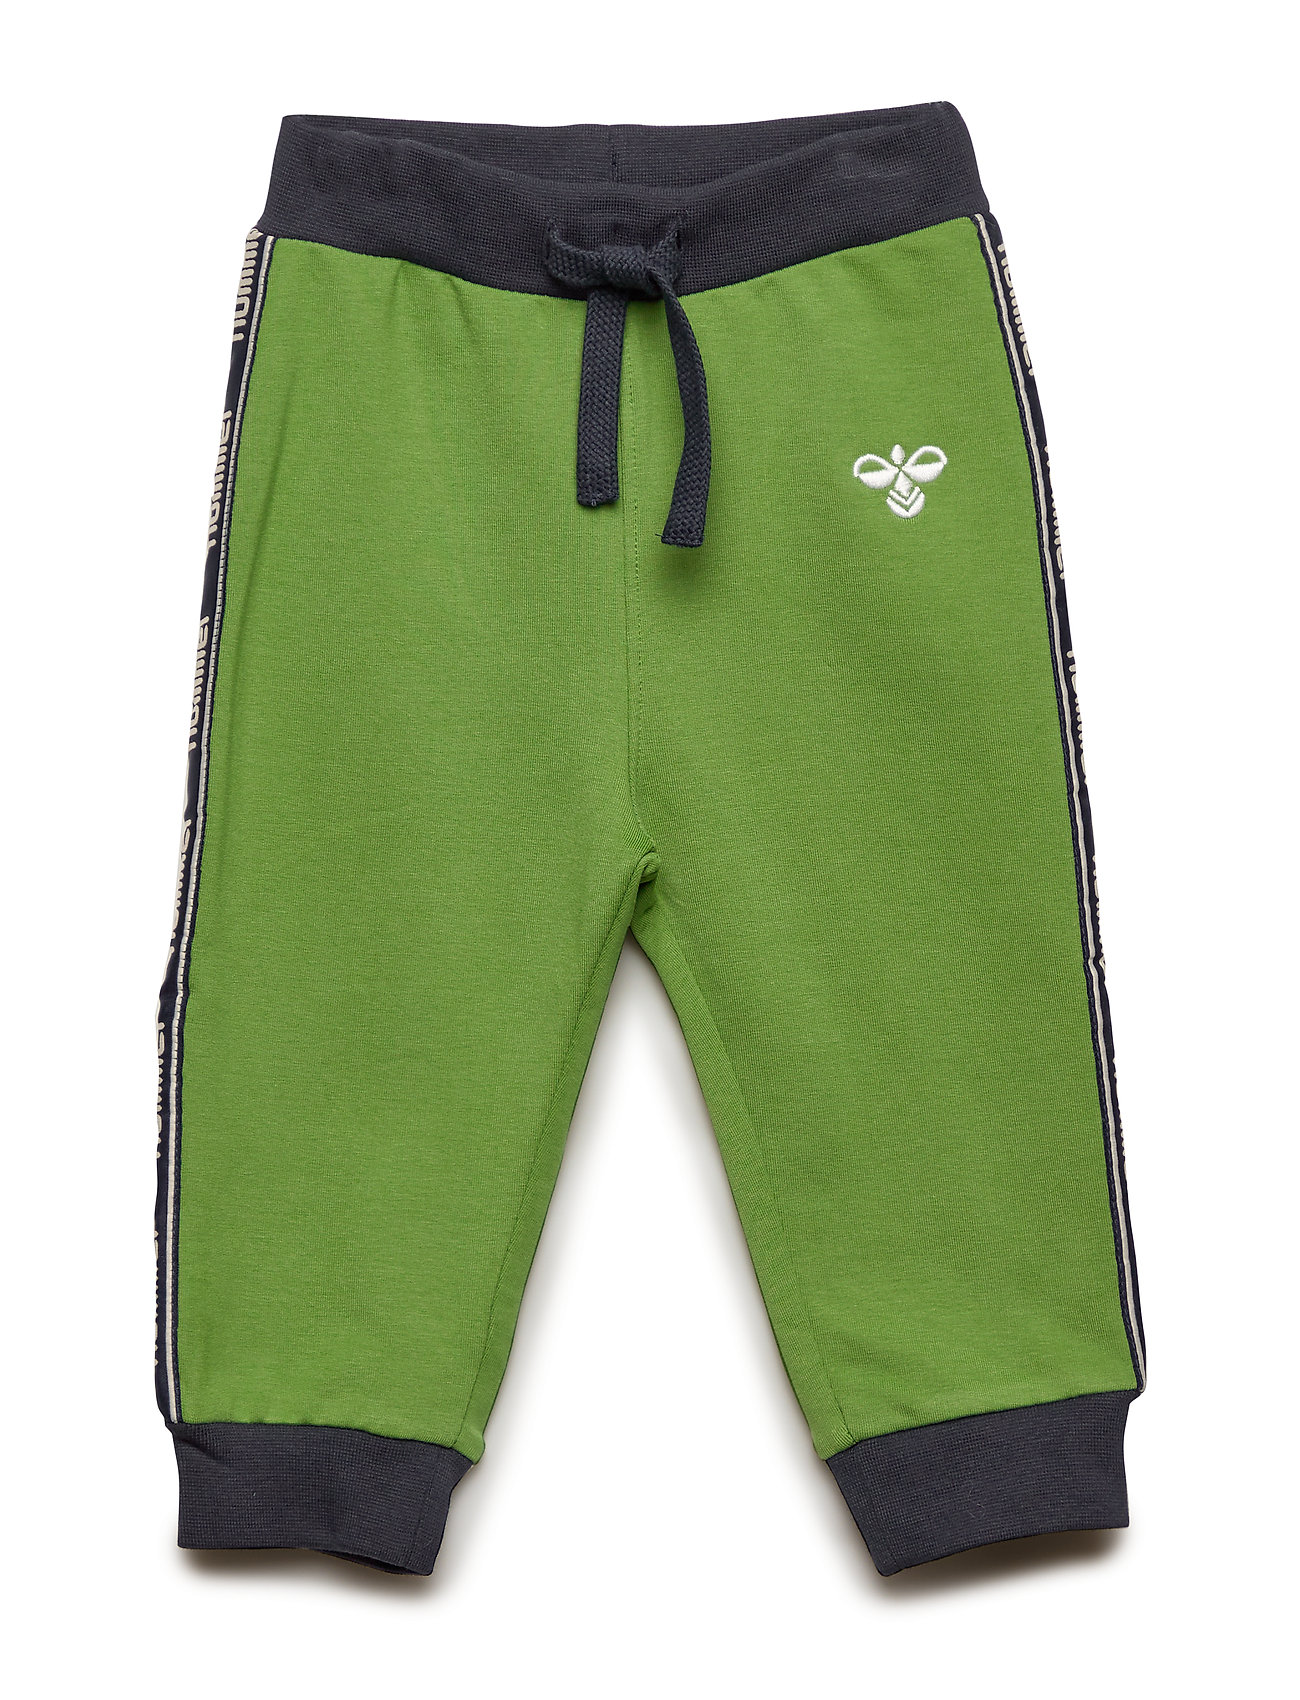 Hummel hmlLUIGI PANTS - WILLOW BOUGH